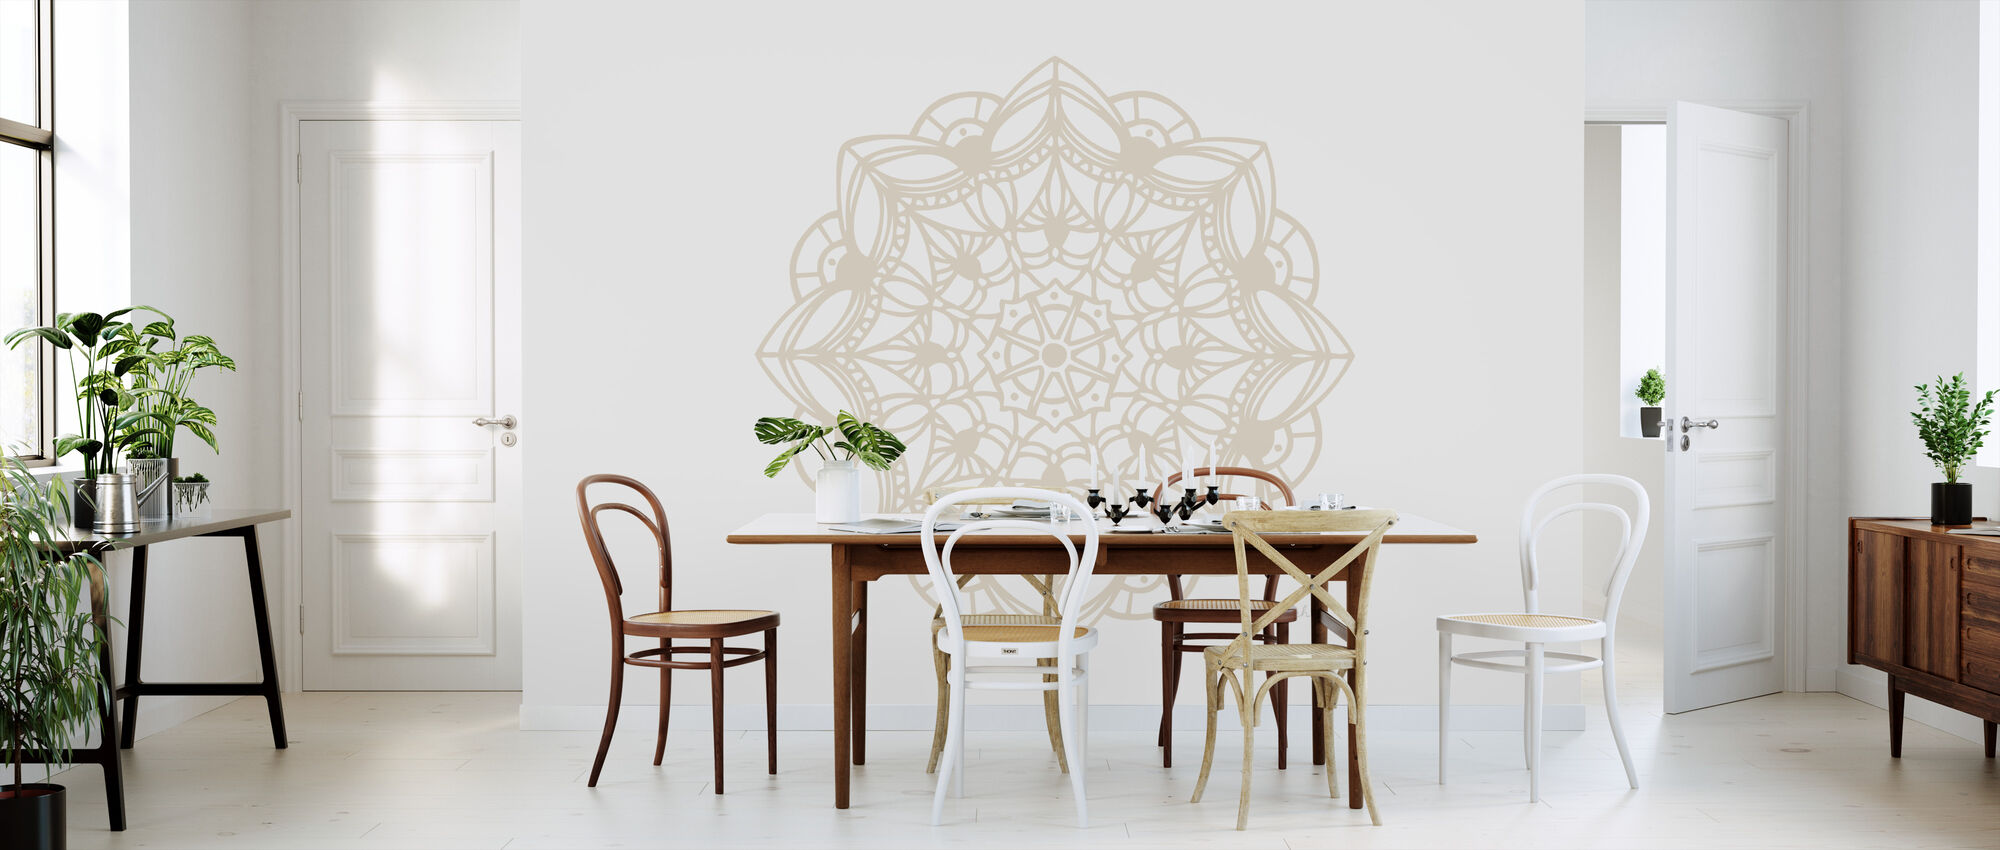 Contemporary Lace Neutral II - Wallpaper - Kitchen